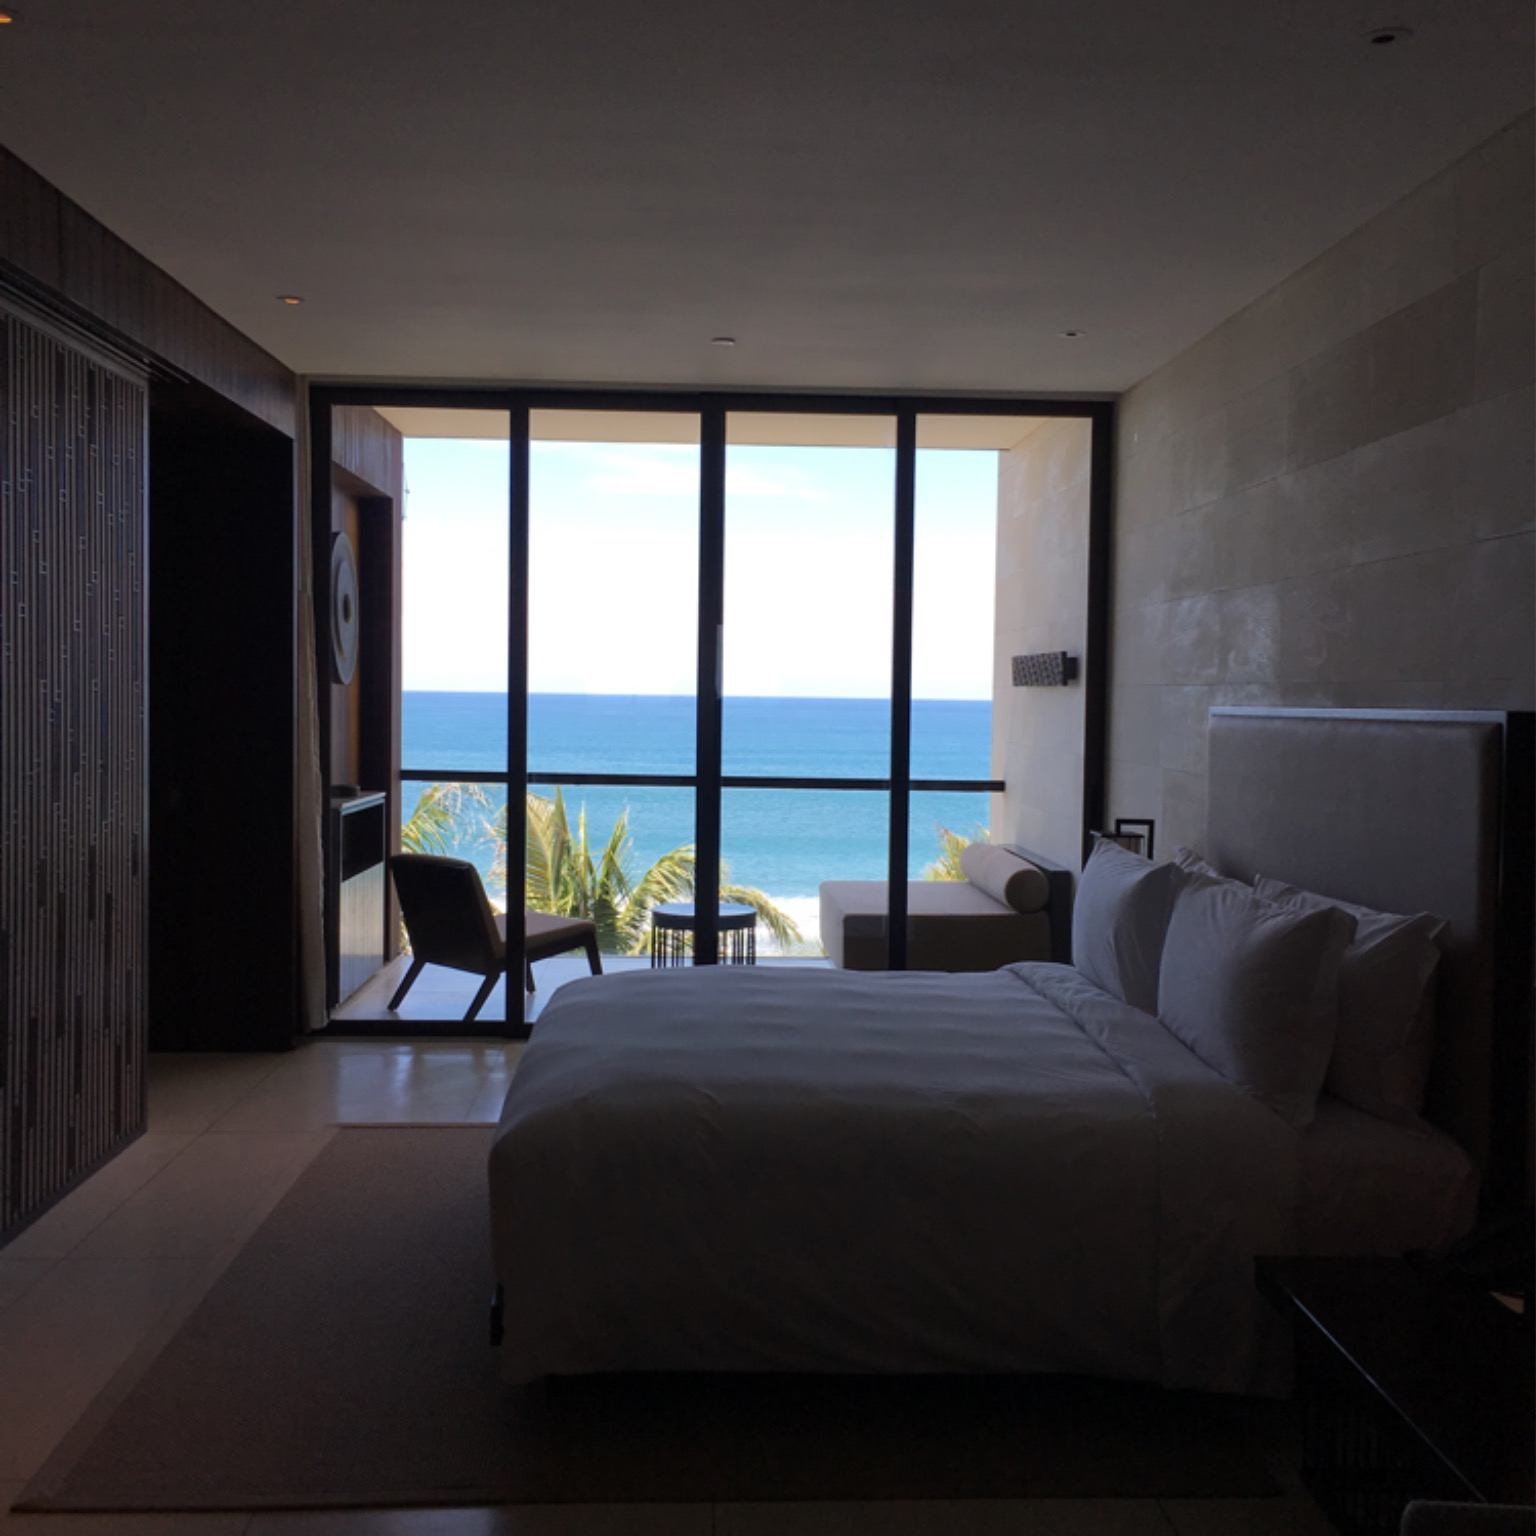 My room with ocean view, a terrace and a big King Koil bed.